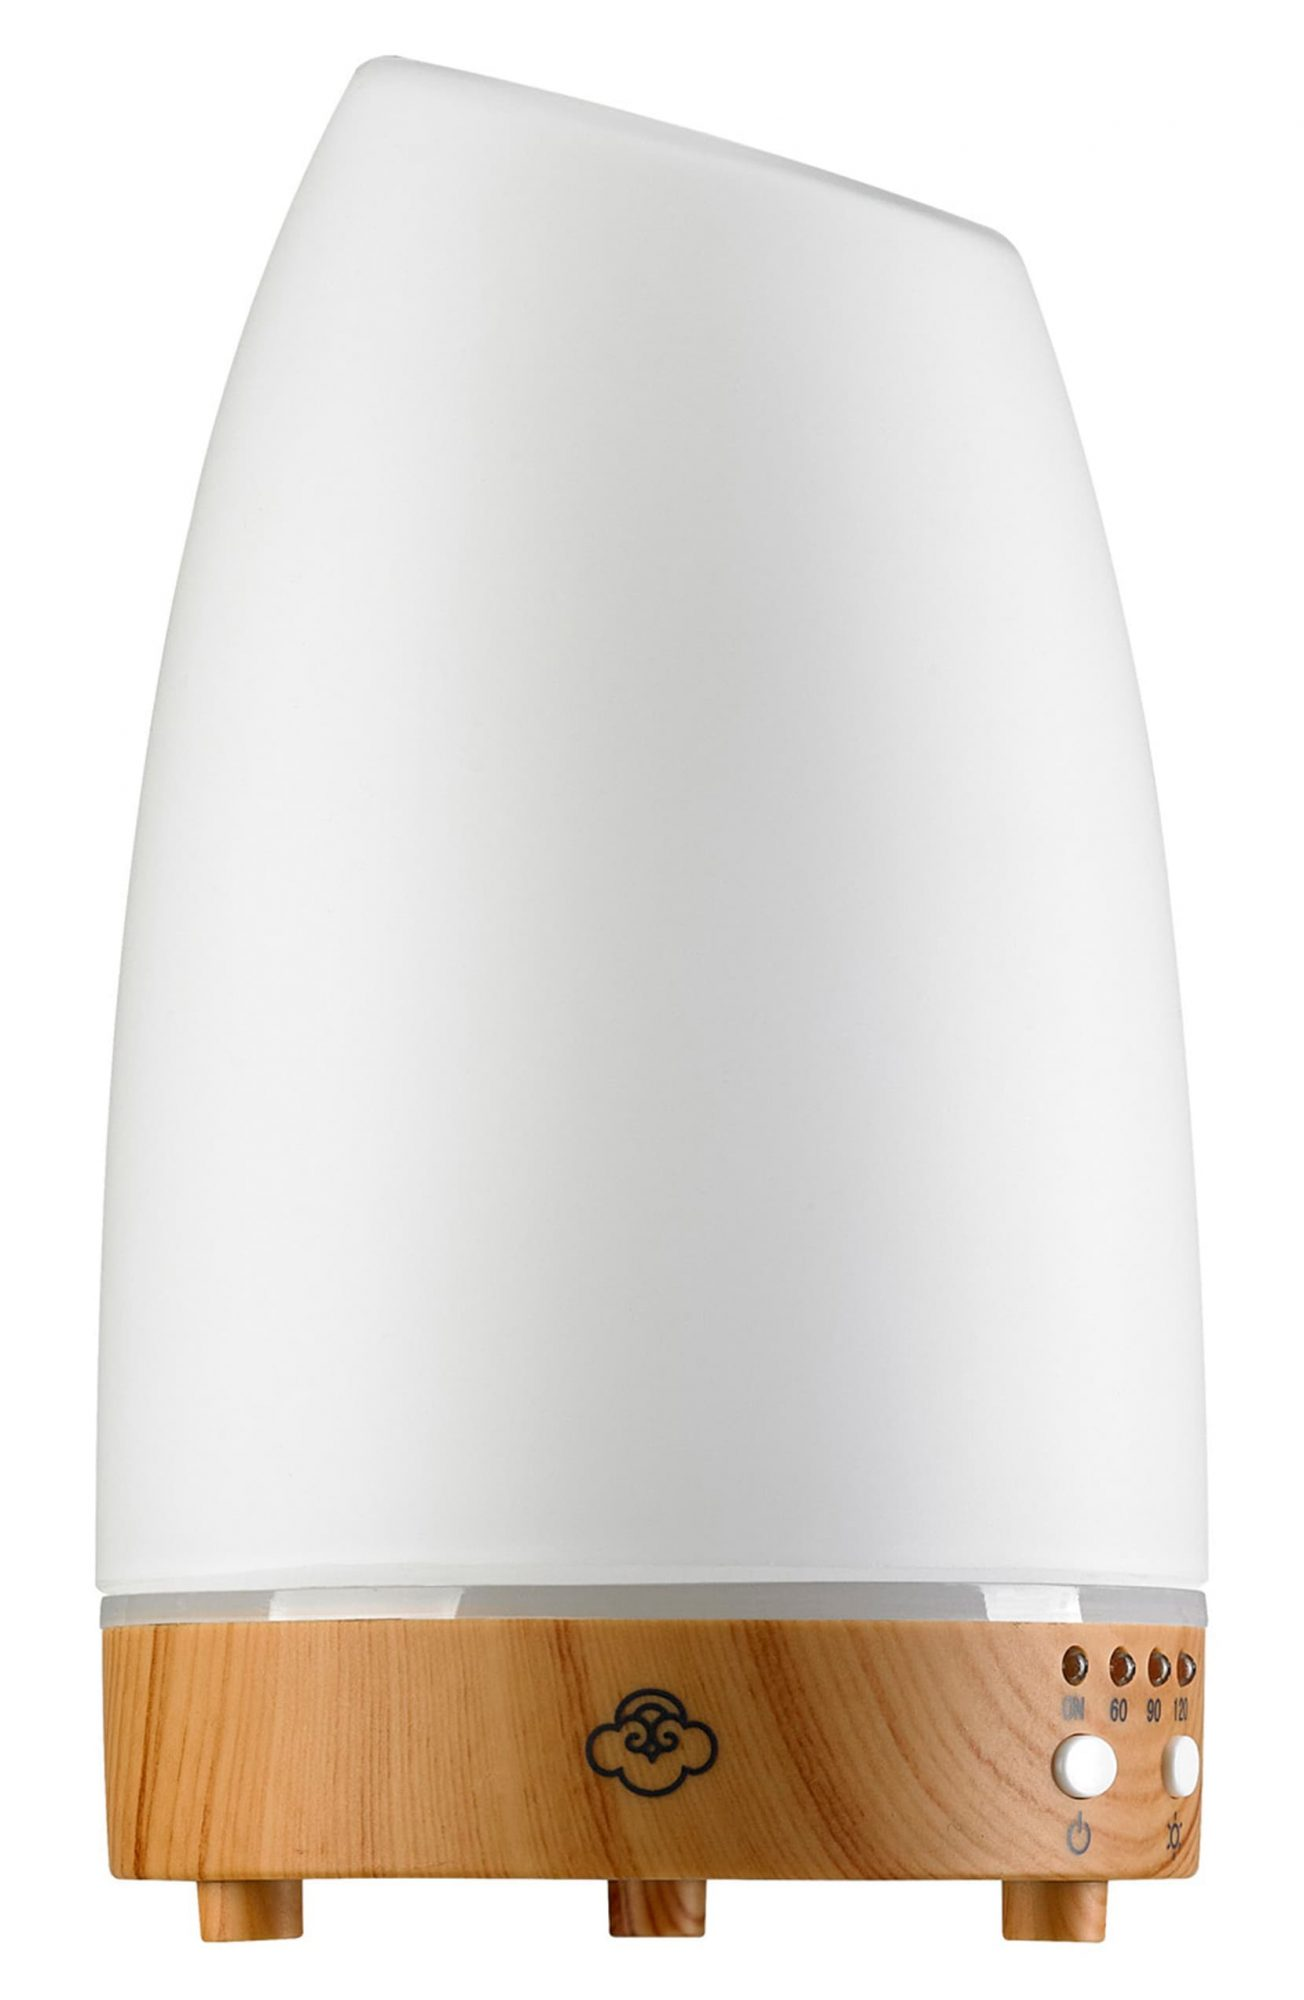 Nordstrom Anniversary Sale, Aromatherapy Diffuser